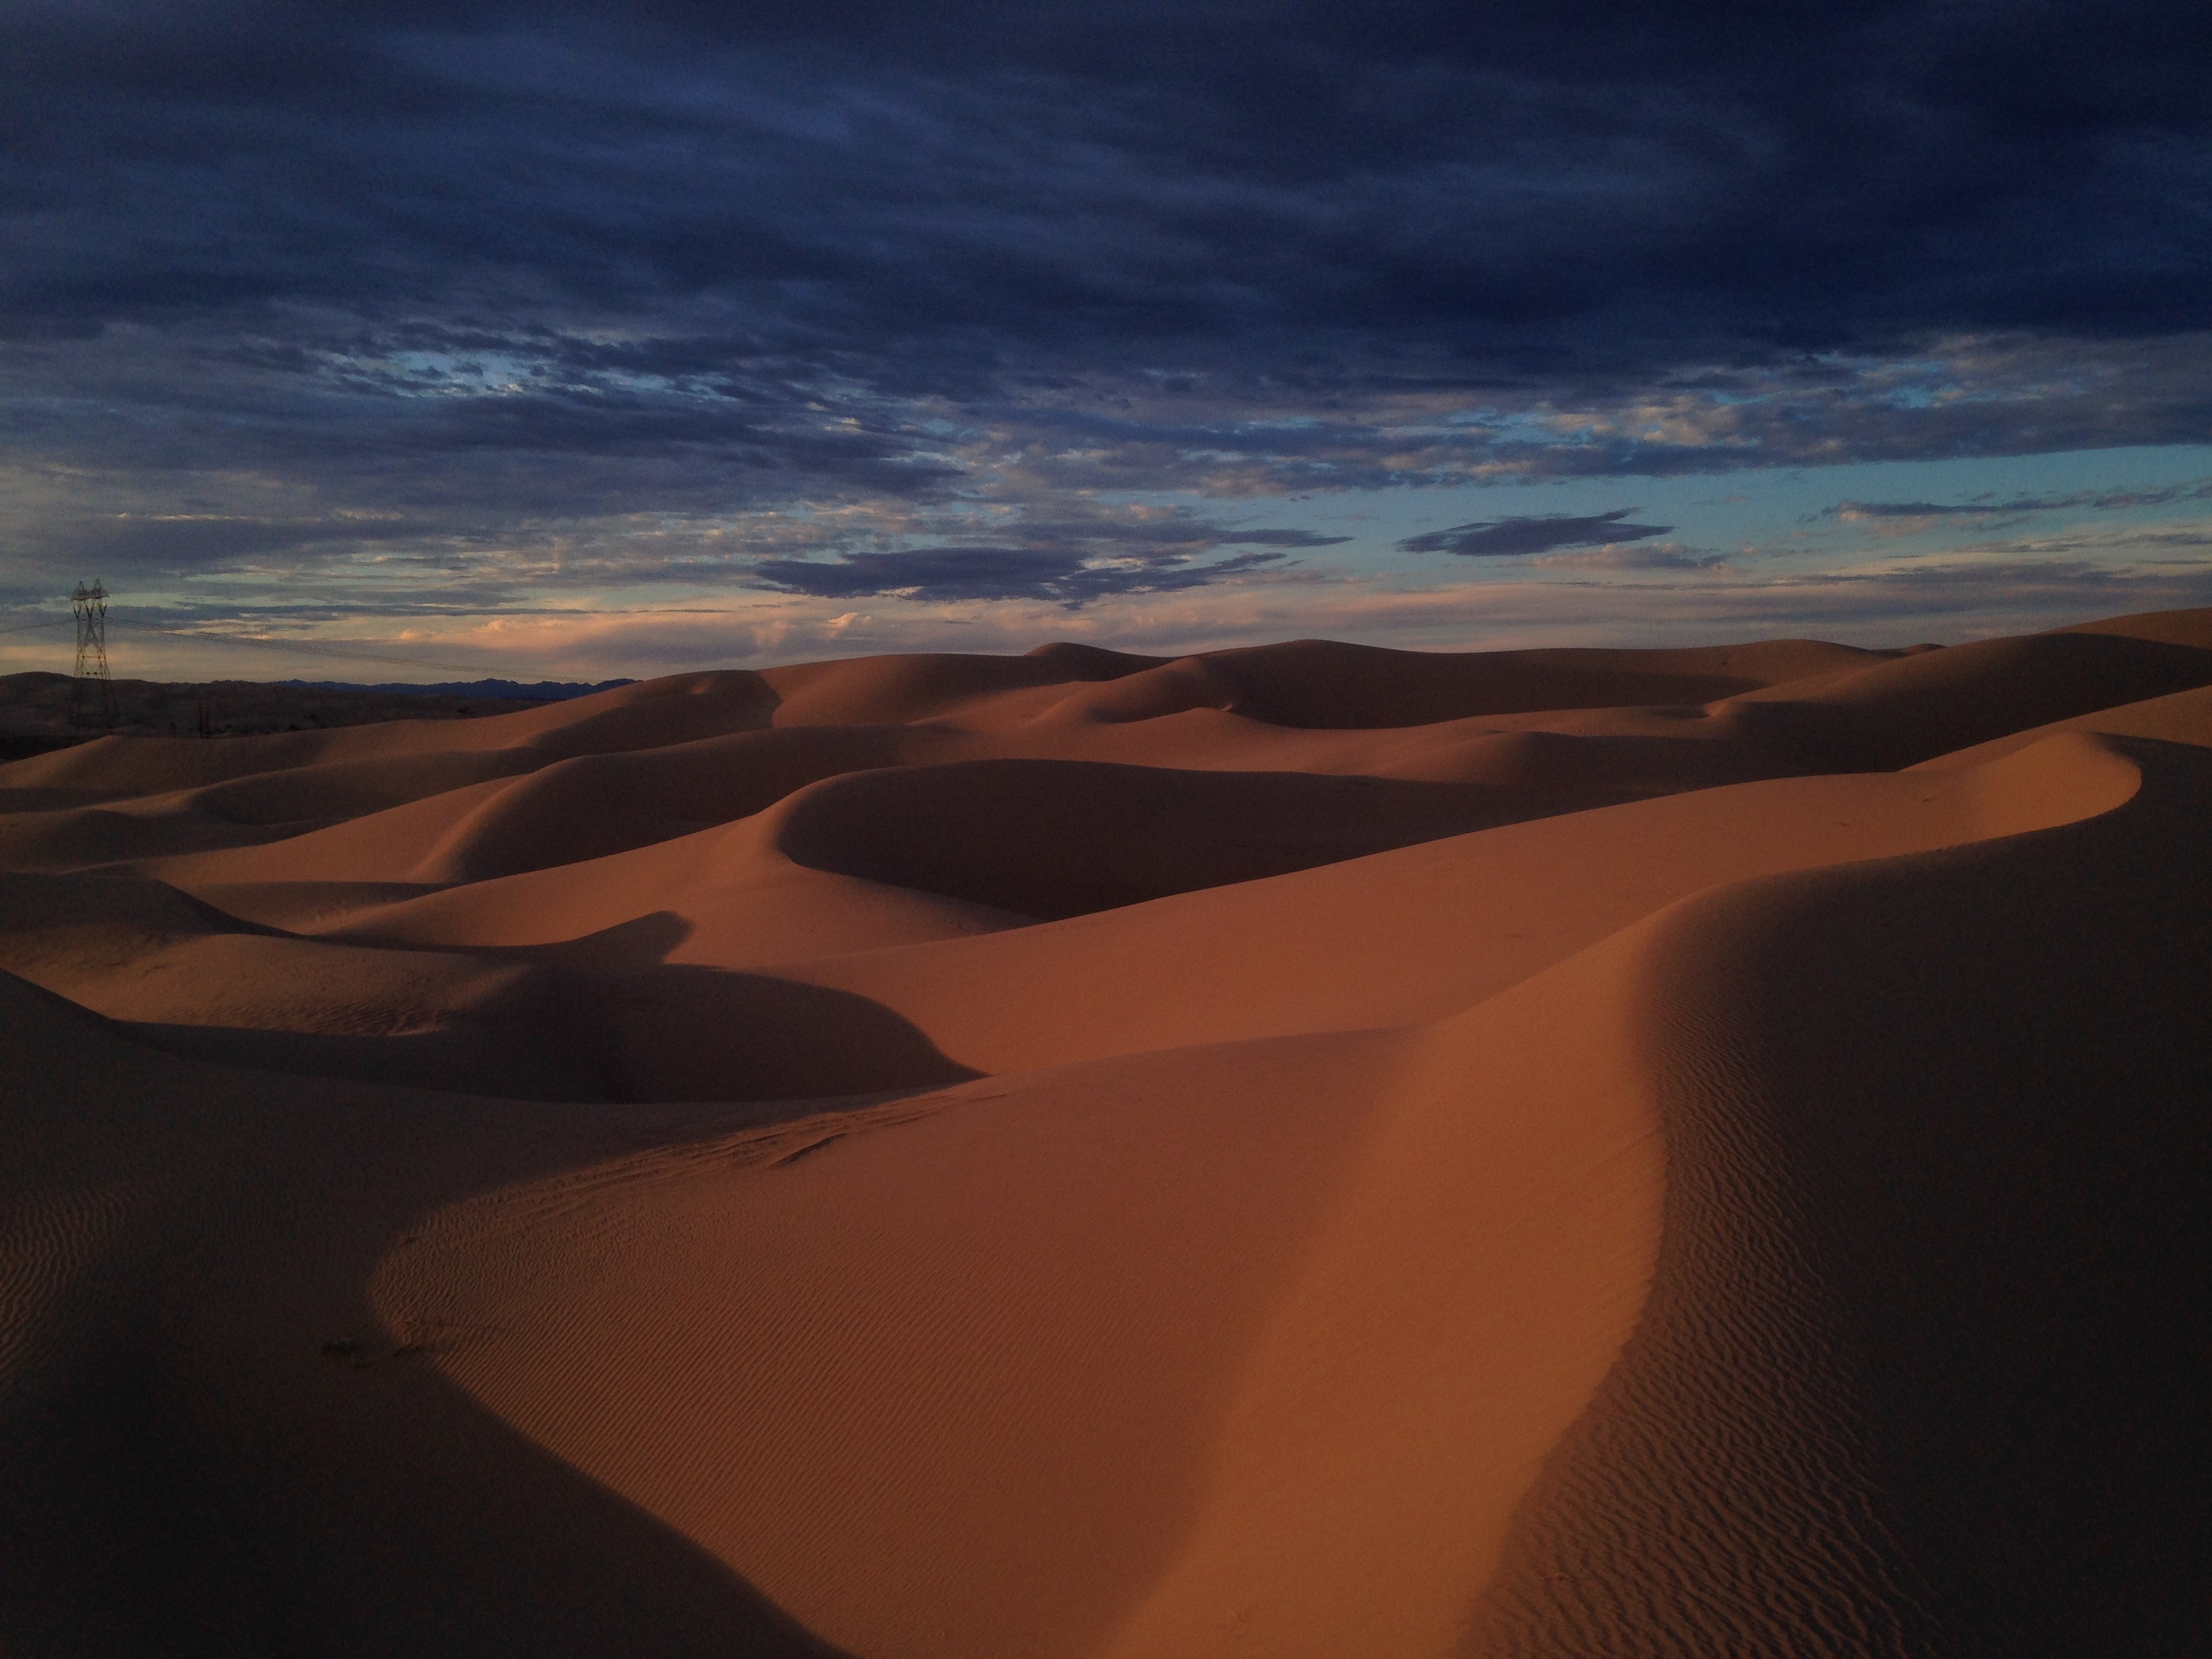 Magical. Imperial Sand Dunes, somewhere along the California/Arizona border. Photo by Kassondra Cloos